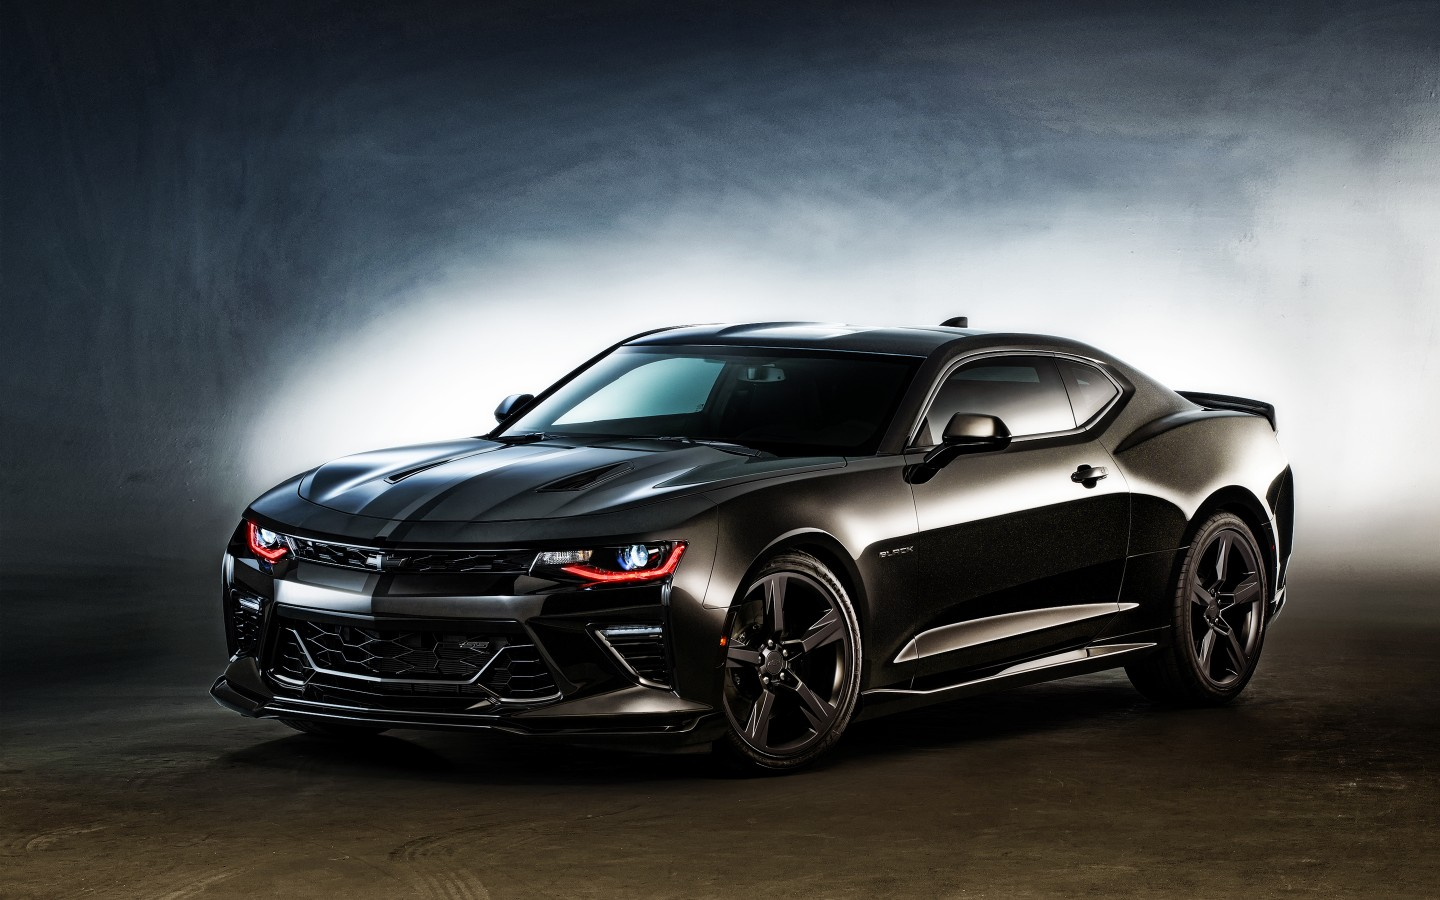 2016 chevrolet camaro black wallpaper hd car wallpapers id 5934. Black Bedroom Furniture Sets. Home Design Ideas